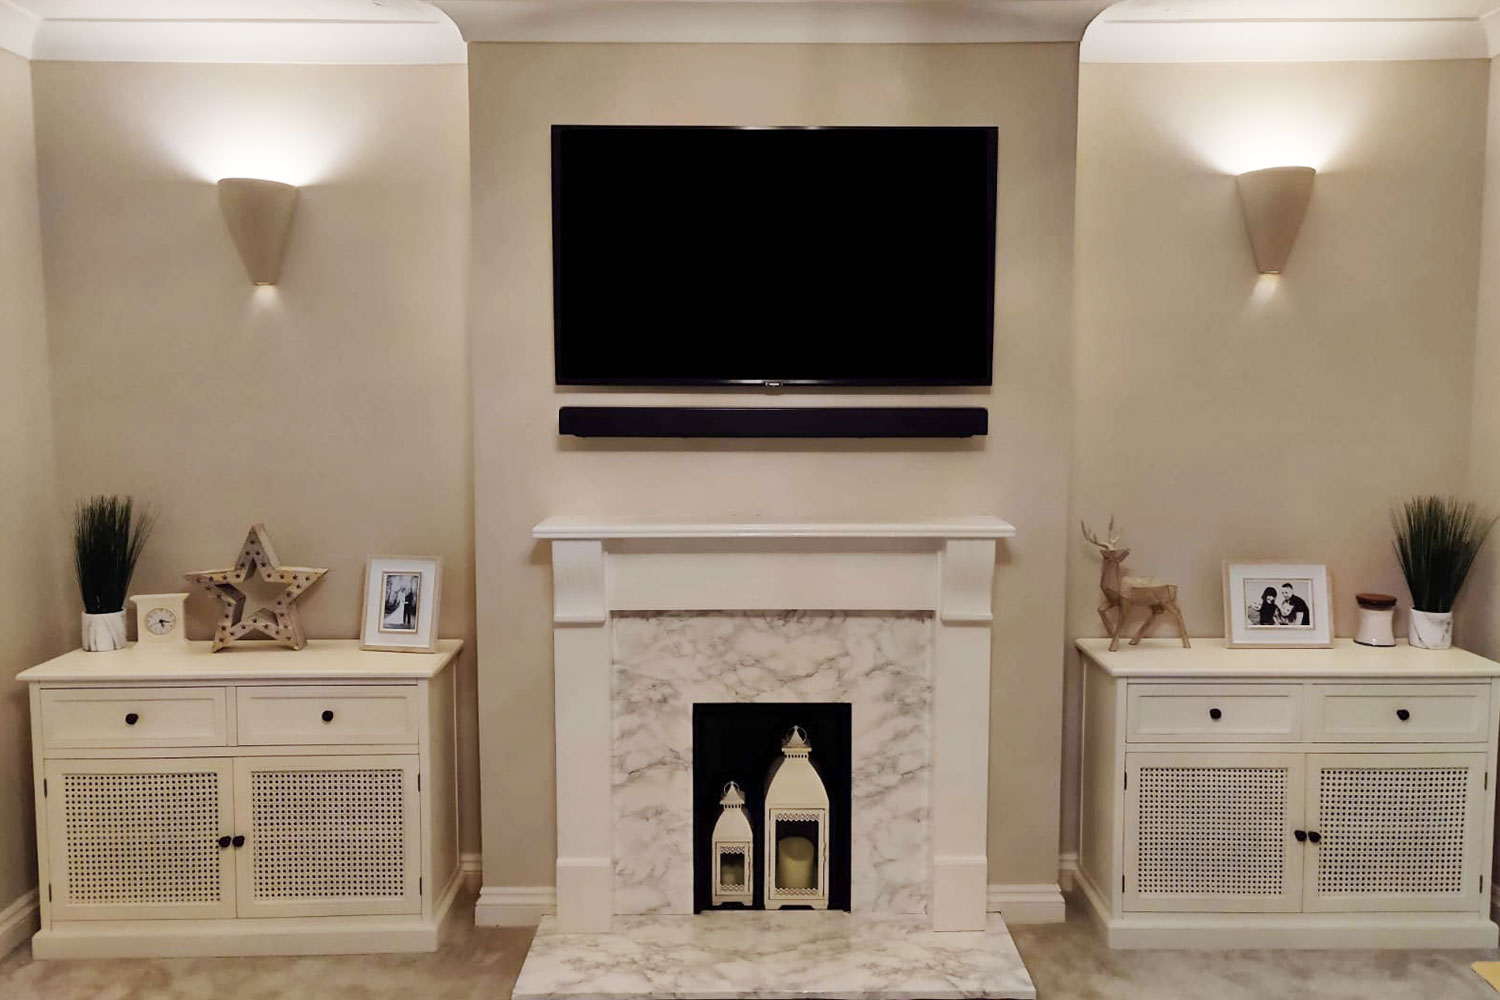 Home Cinema Design Specialists in Audio Visual & Smart Home Installations